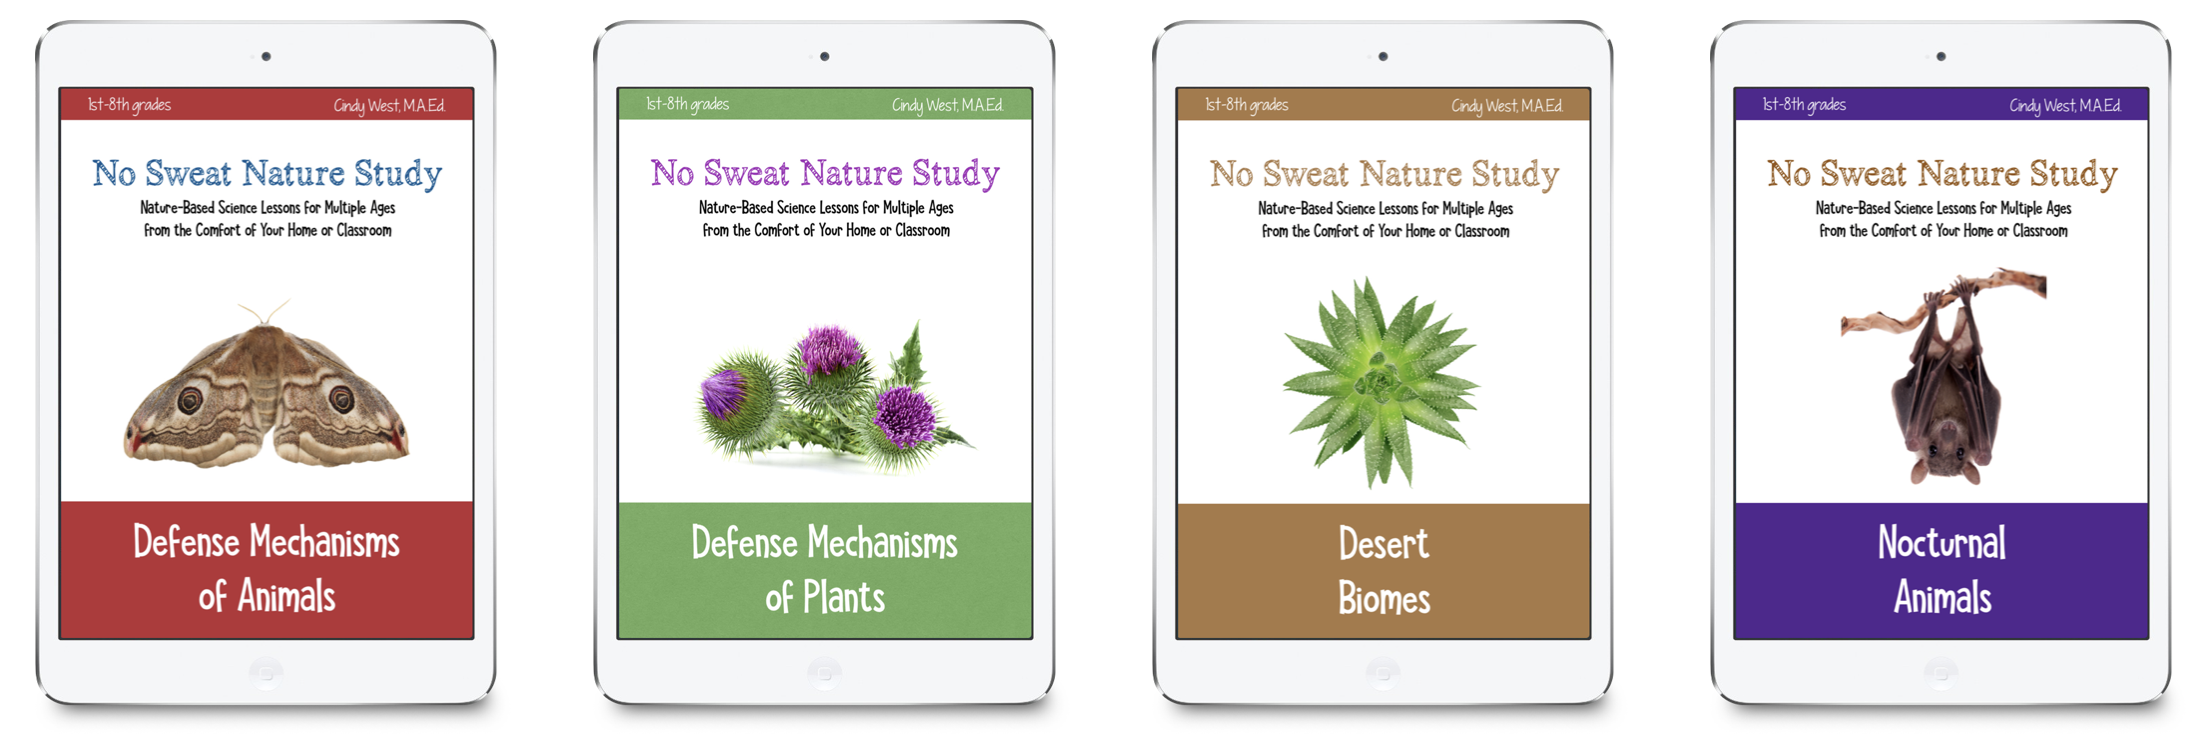 No Sweat Nature Studies - easy nature studies for homeschooling!